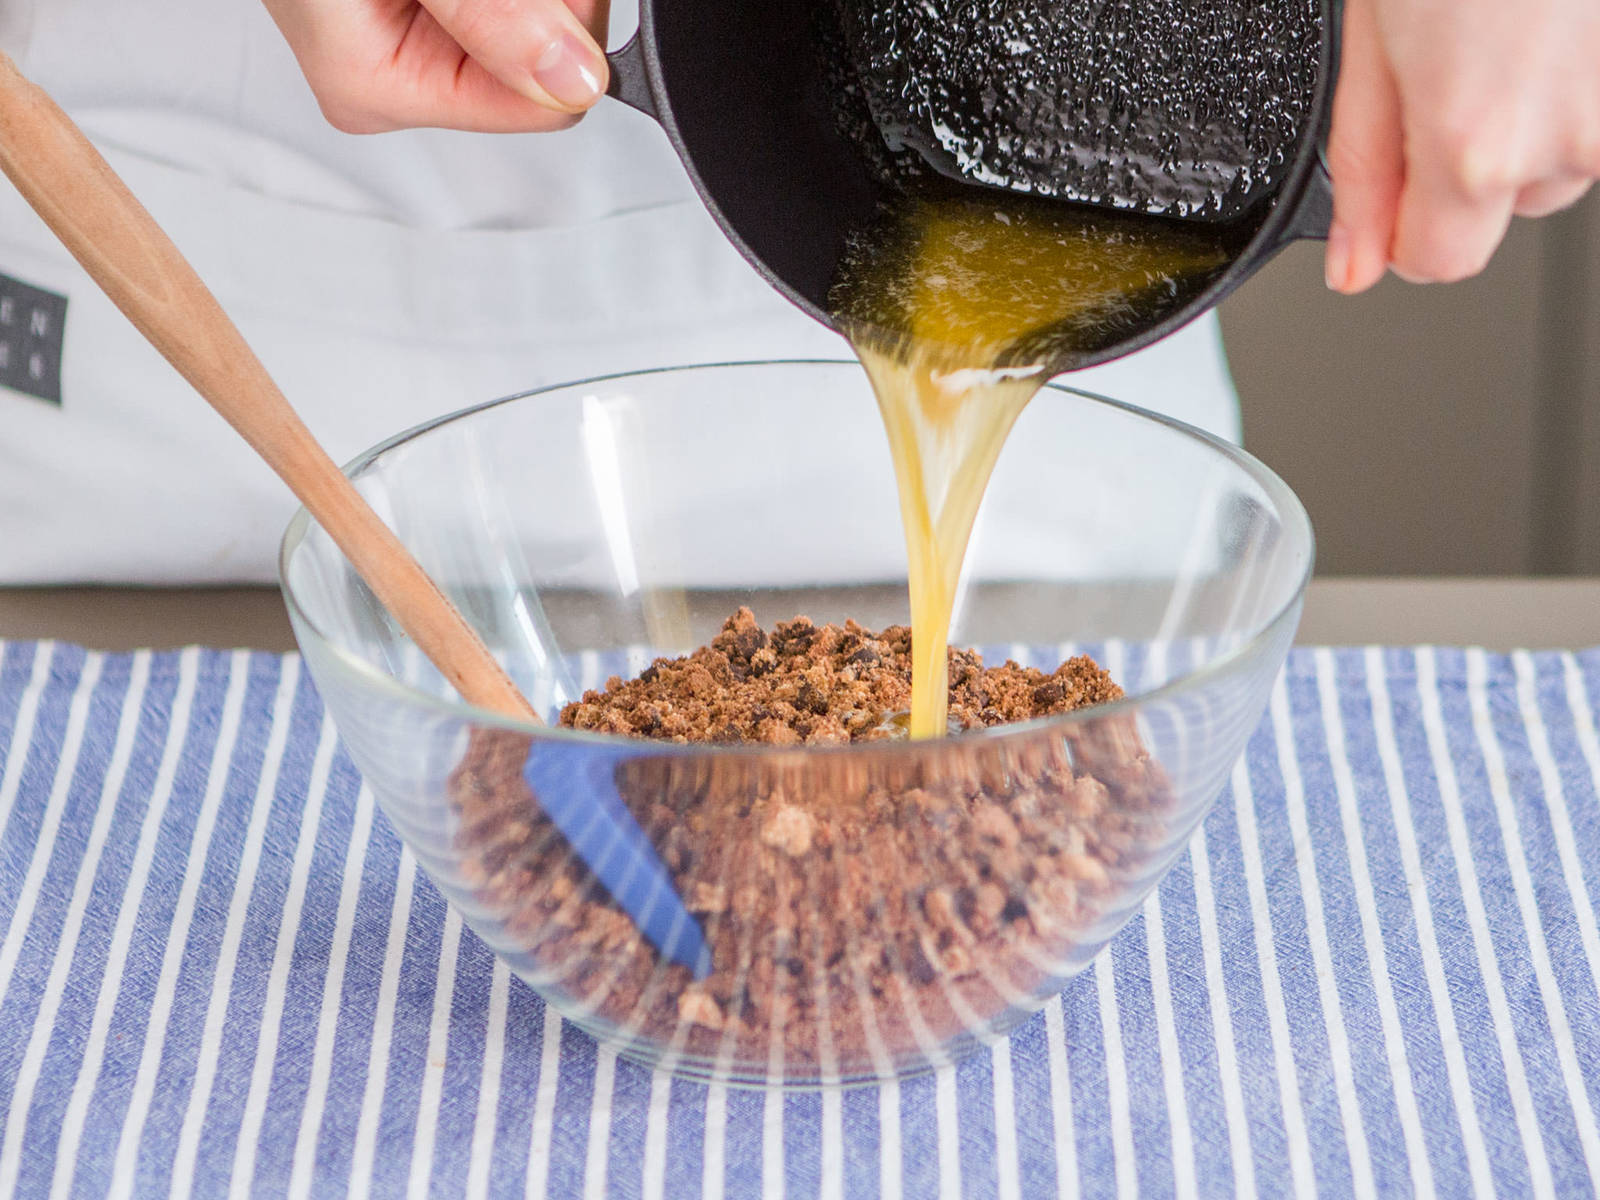 In a small saucepan, melt butter over medium heat and add brown sugar. Place crumbled cookies into a large bowl and pour melted butter on top. Stir well to combine.